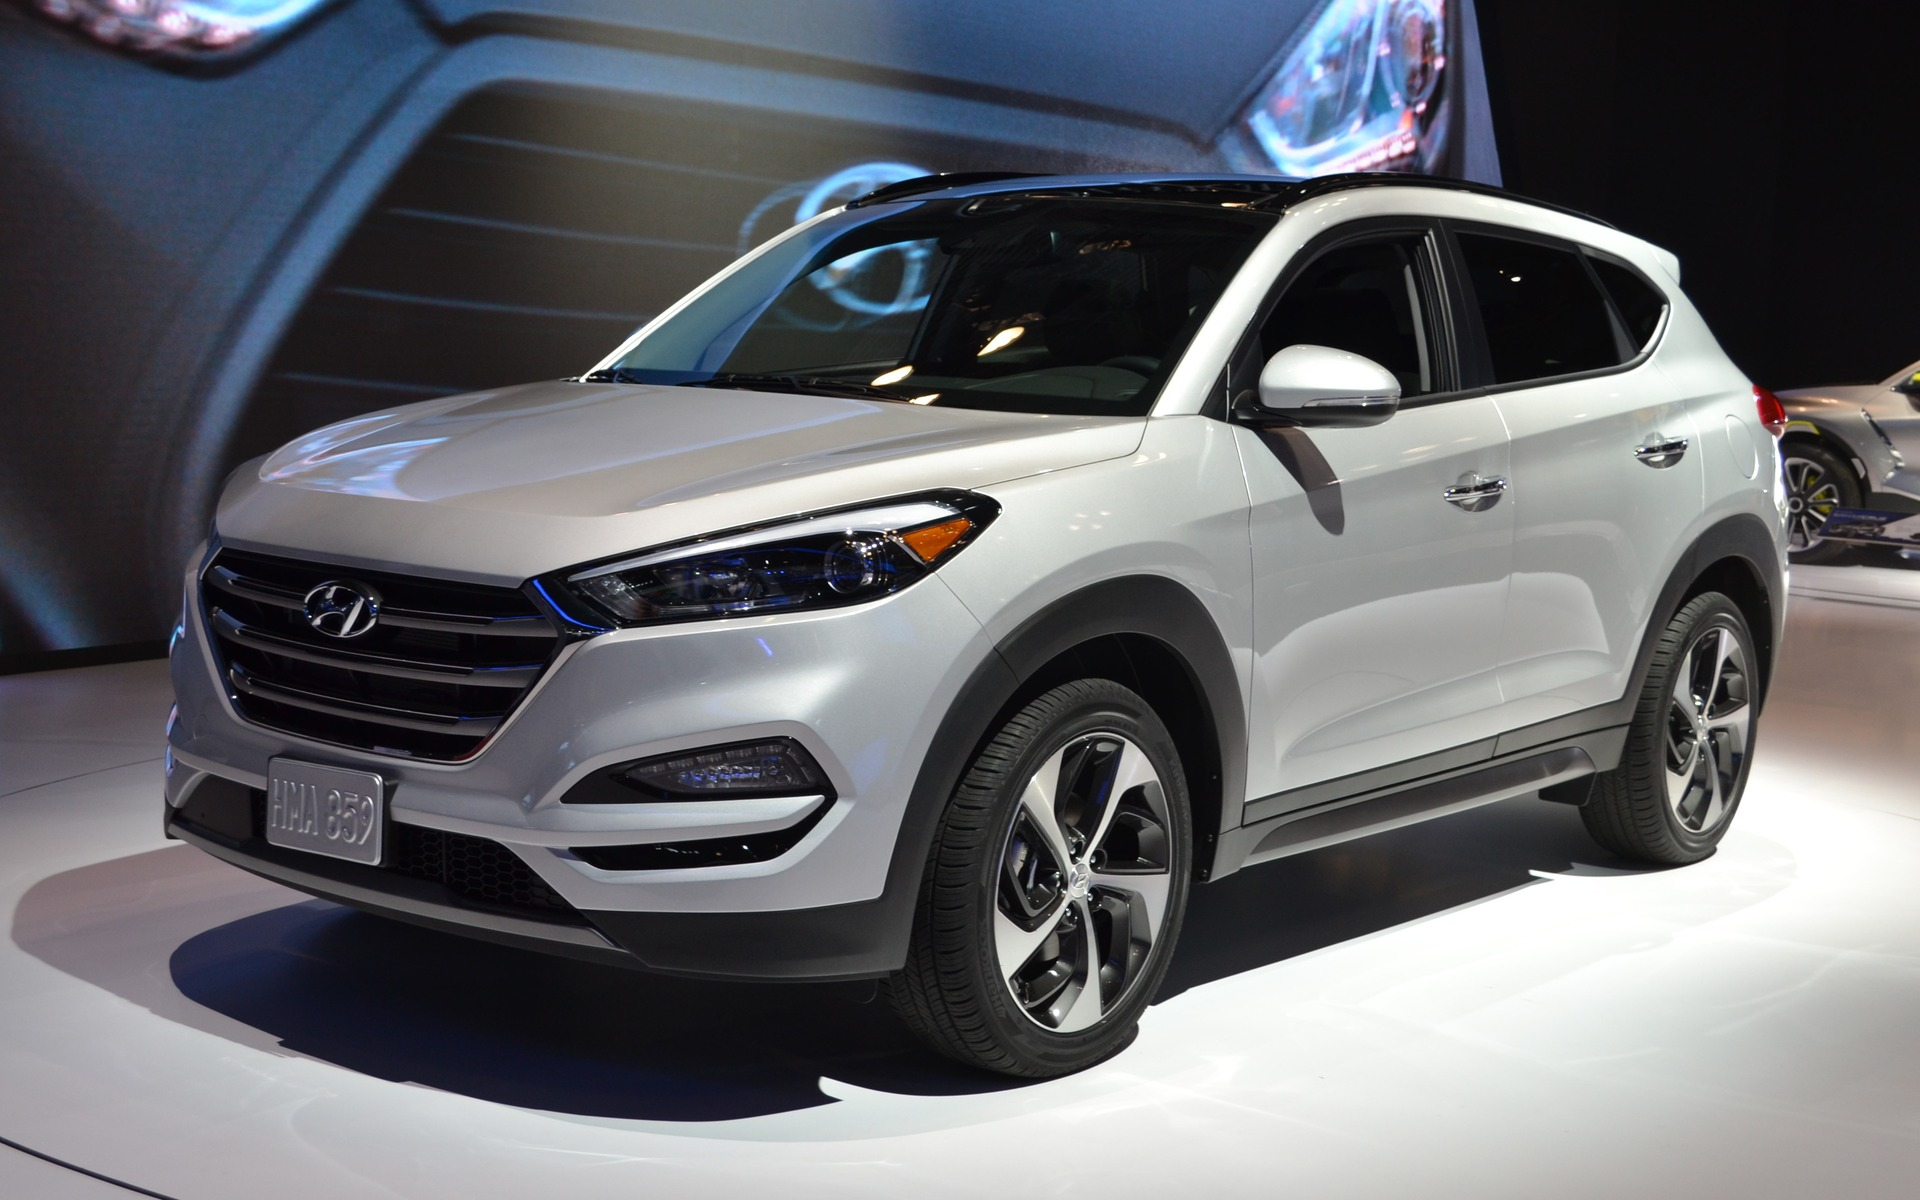 Hyundai Tucson 2016 HD Wallpapers Free Download